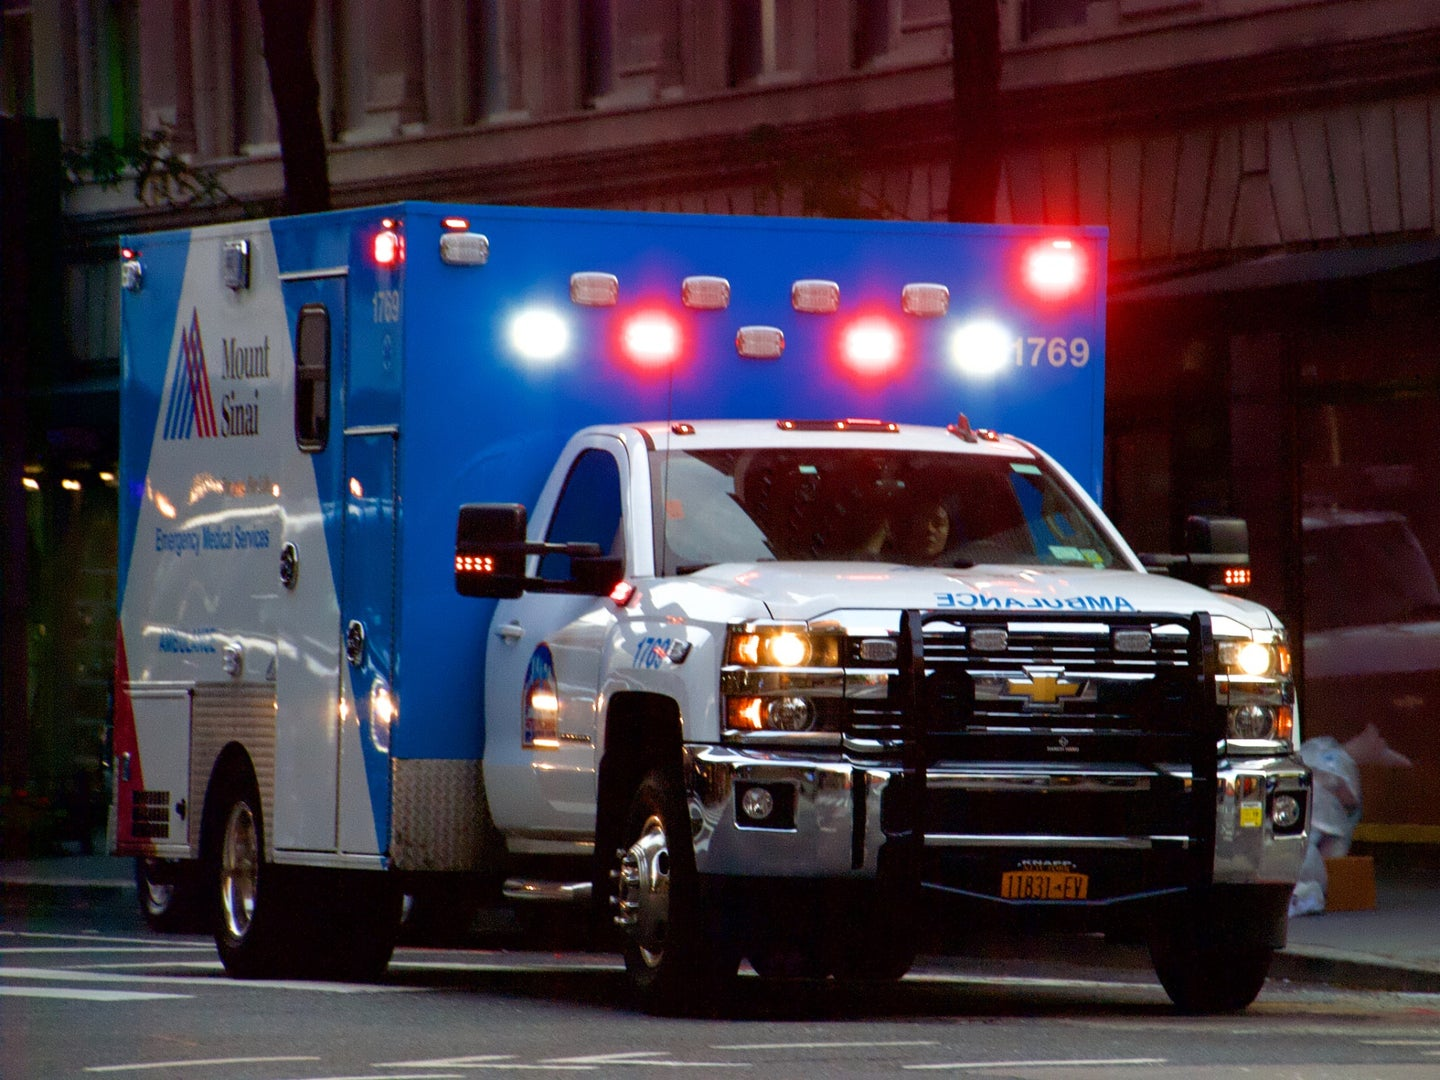 A Mount Sinai ambulance with its lights on in New York City.